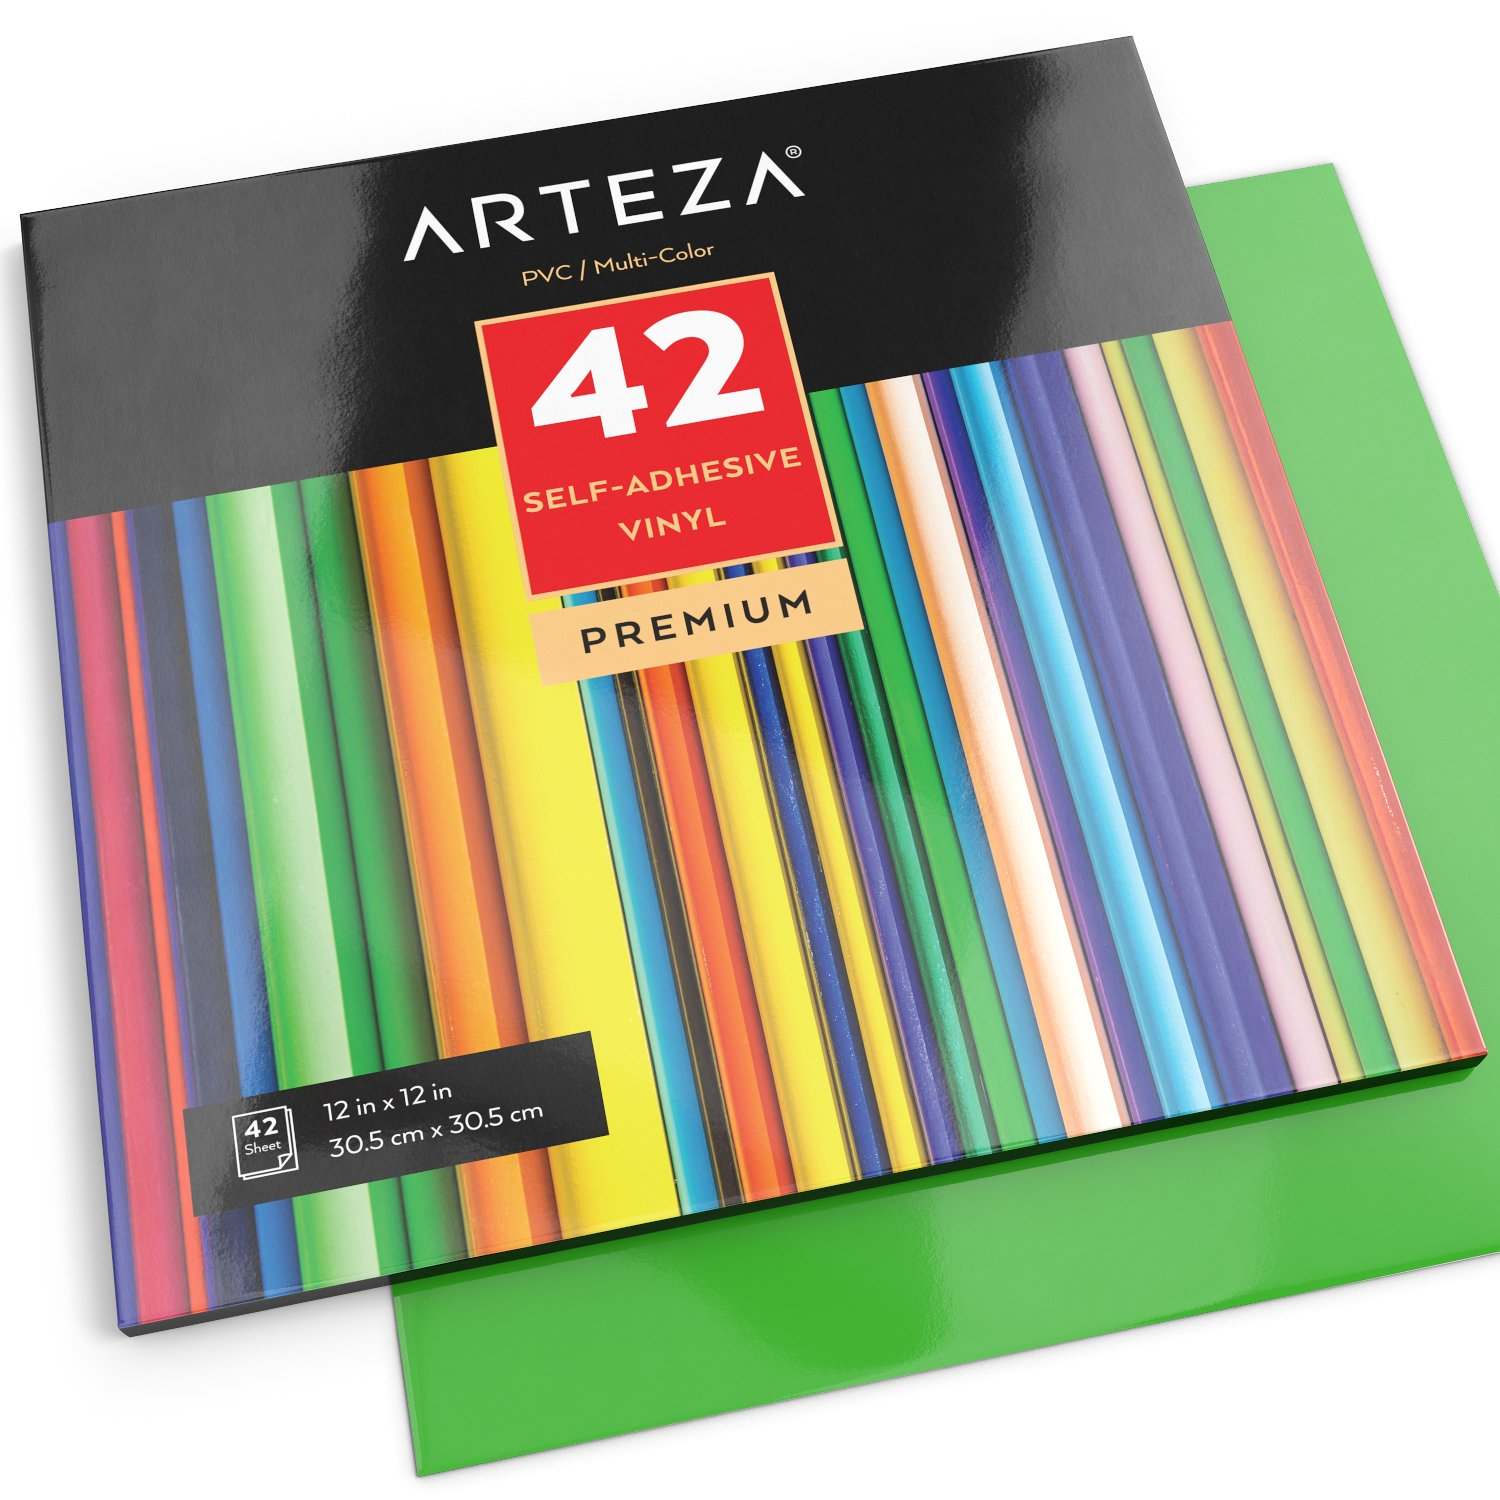 12x12 for Indoor /& Outdoor Projects Waterproof and Easy to Weed /& Cut Pack of 42 ARTEZA Self Adhesive Vinyl Sheets Compatible with Cricut /& Other Craft Cutters Assorted Colors